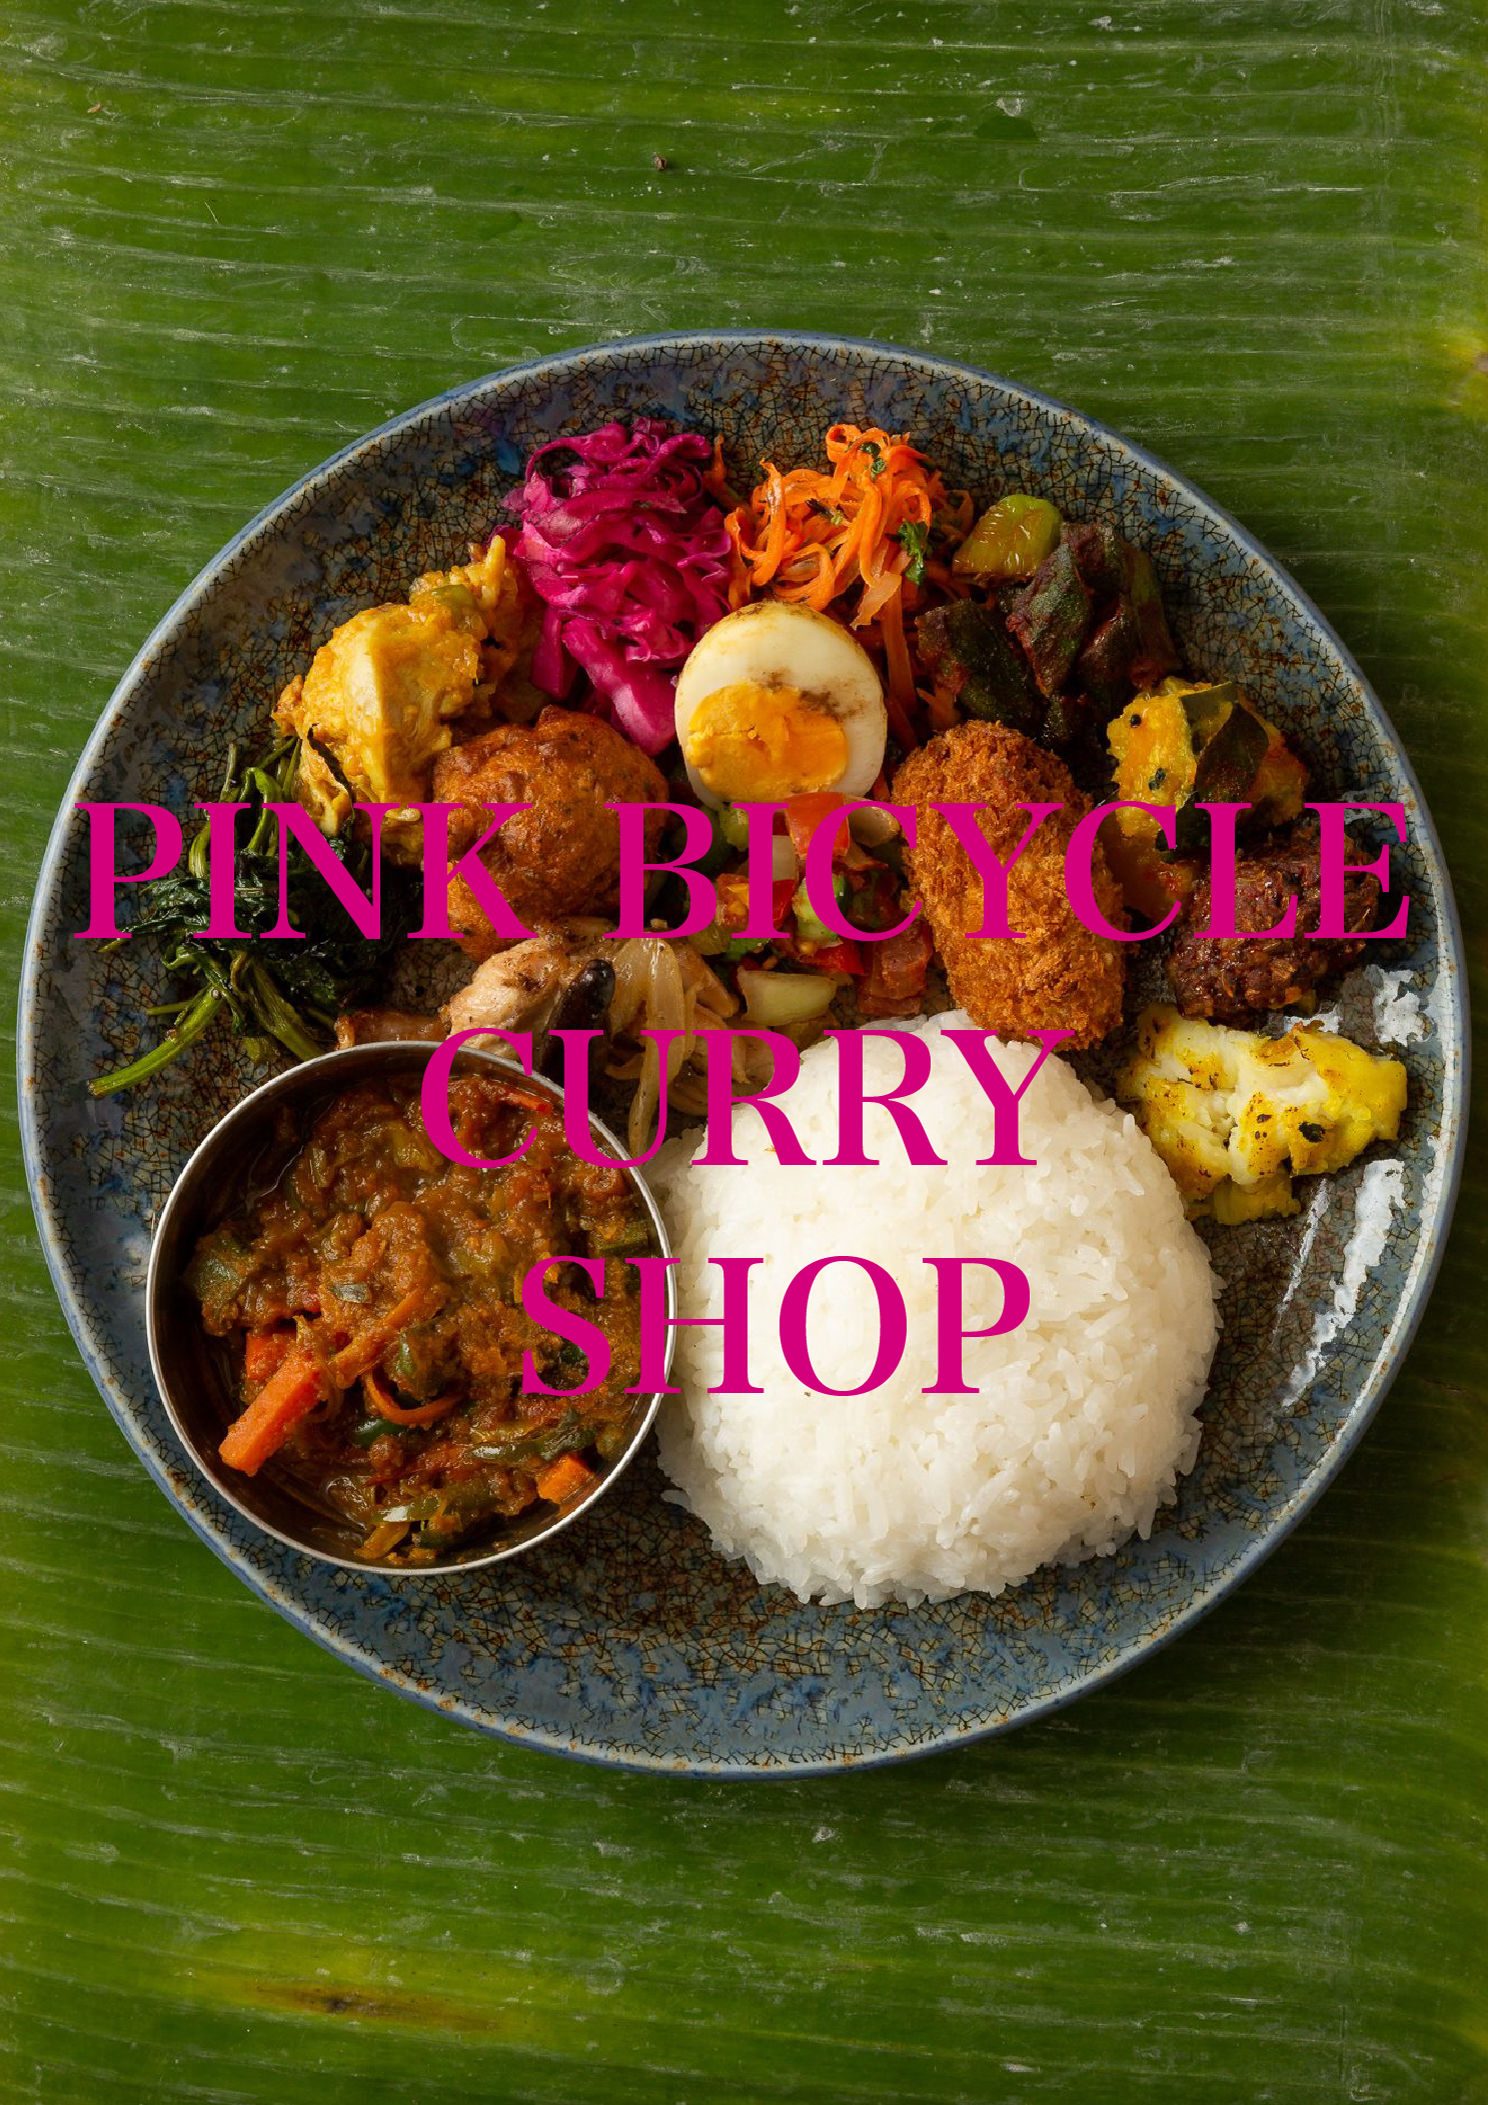 PINK BICYCLE CURRY SHOP